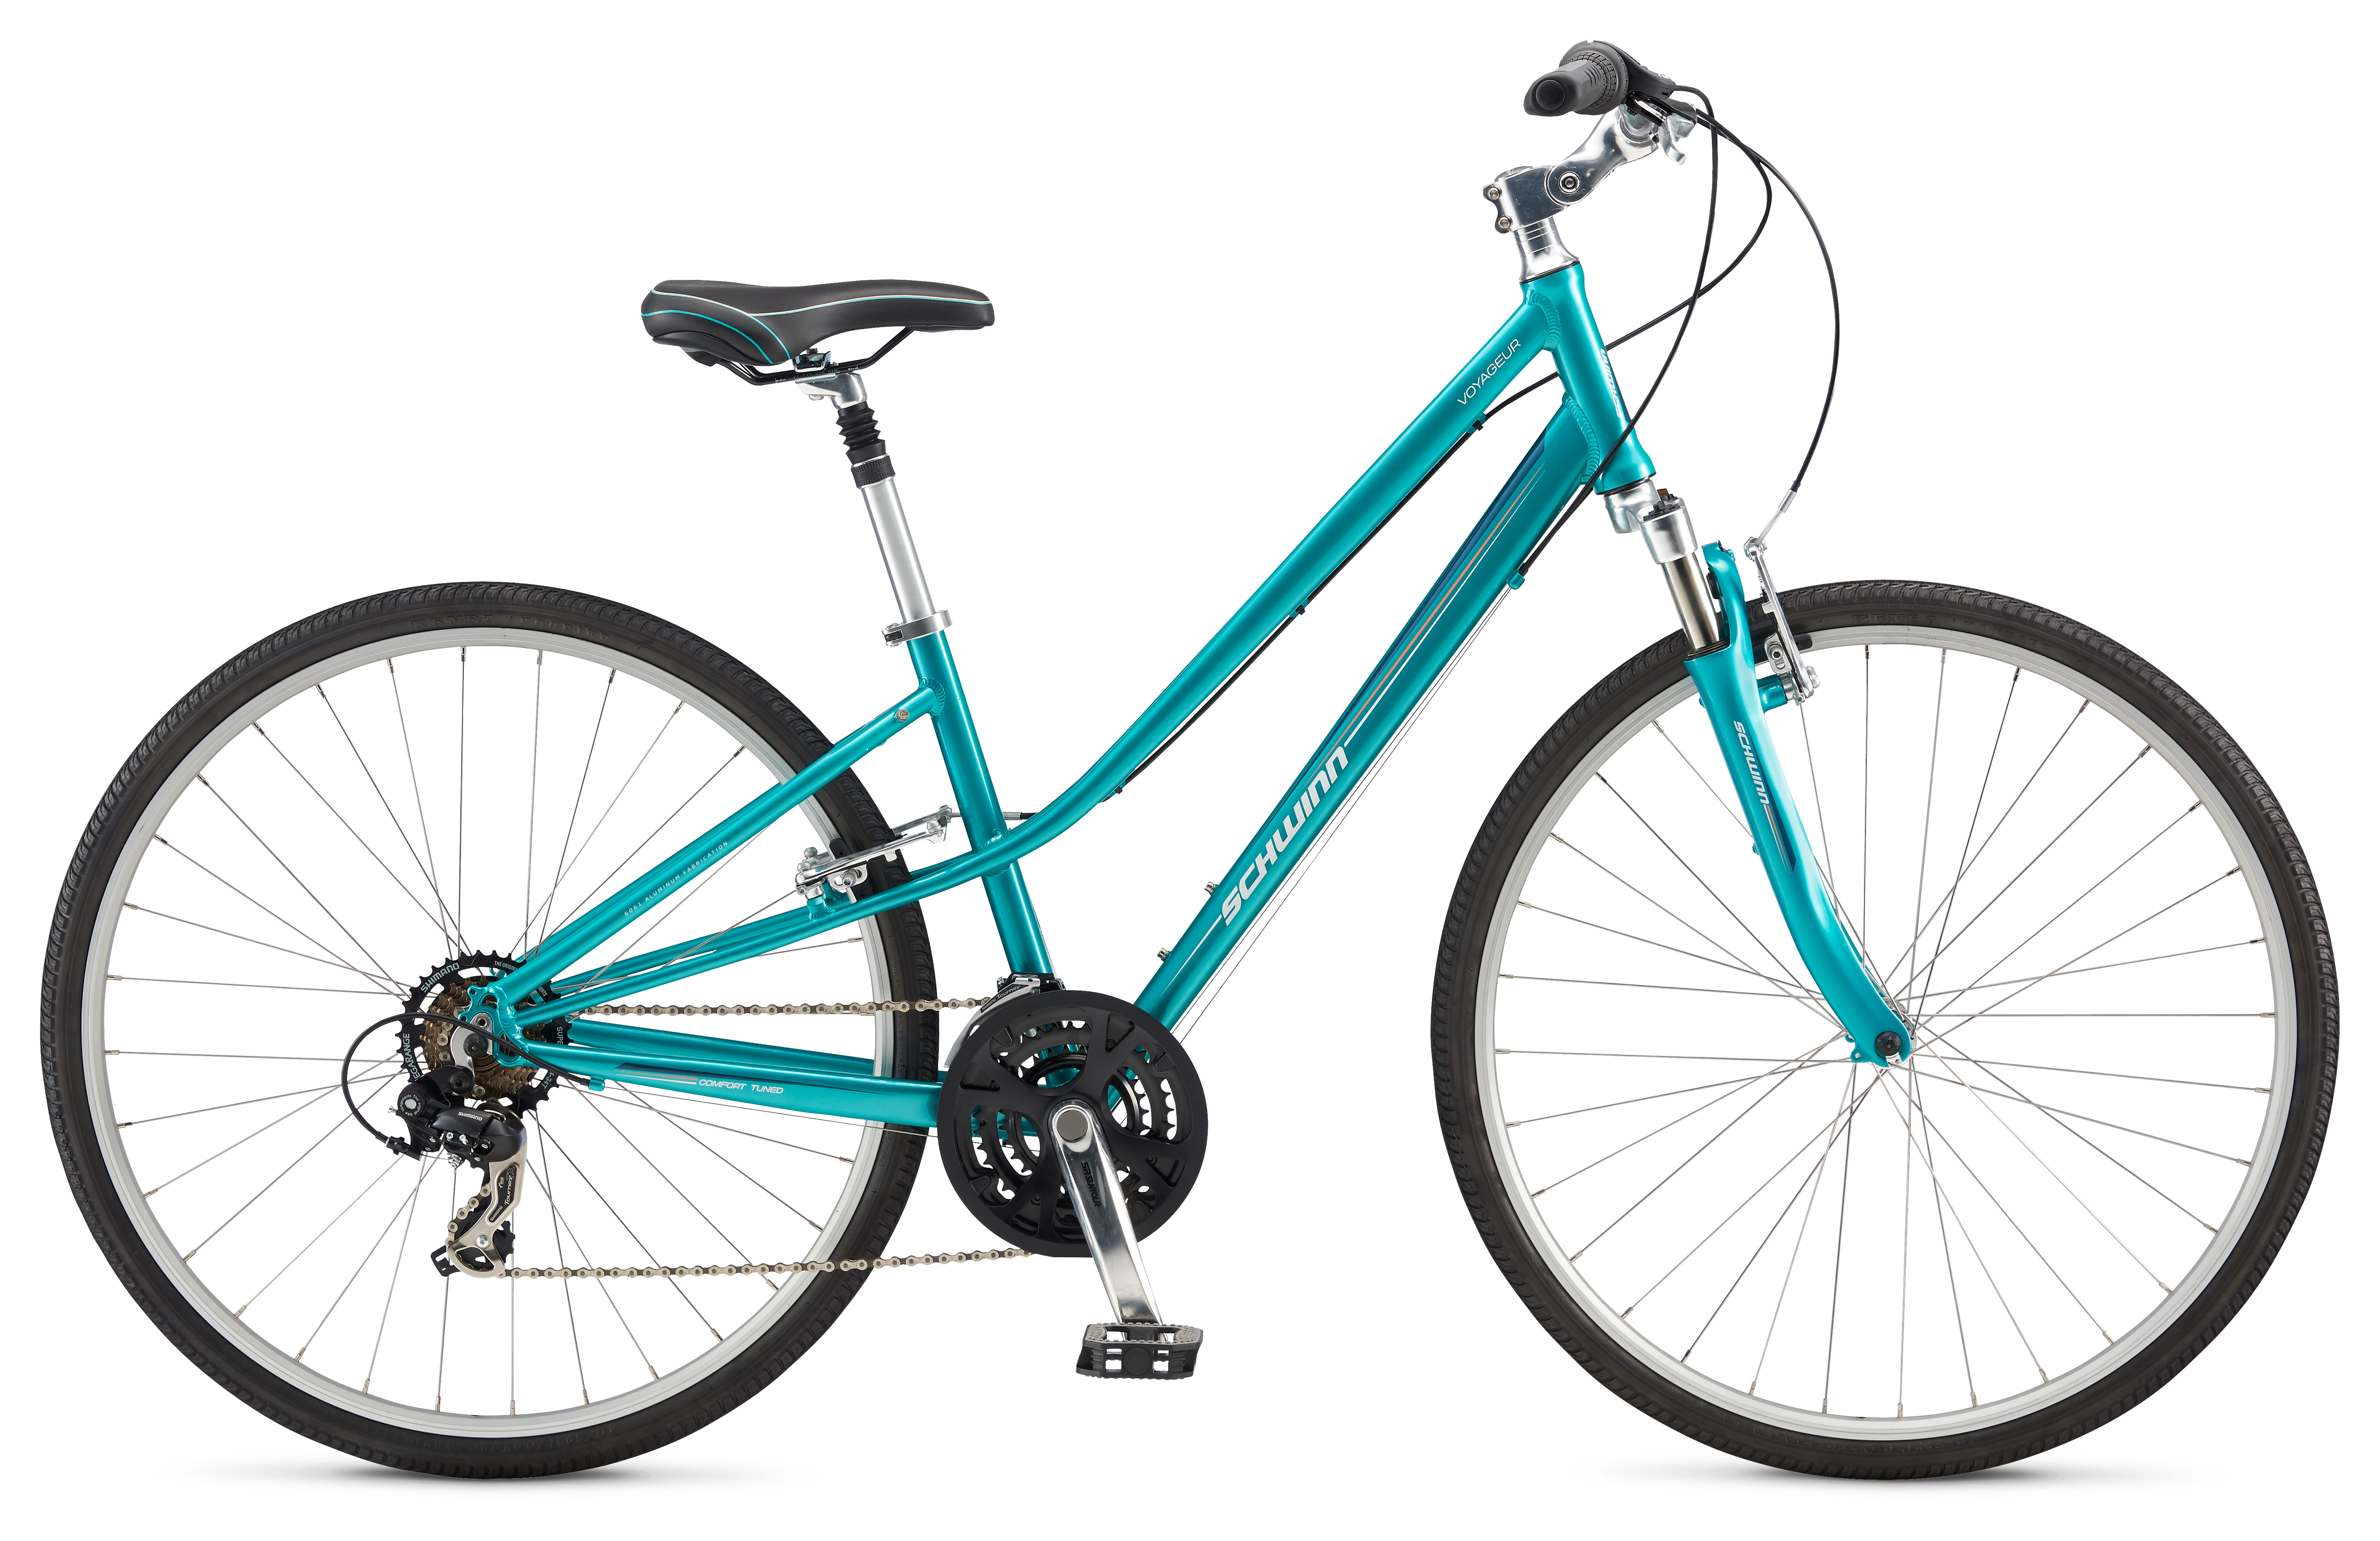 bikes dx b bicycles gallery states giant blue united us color comfort sedona comforter